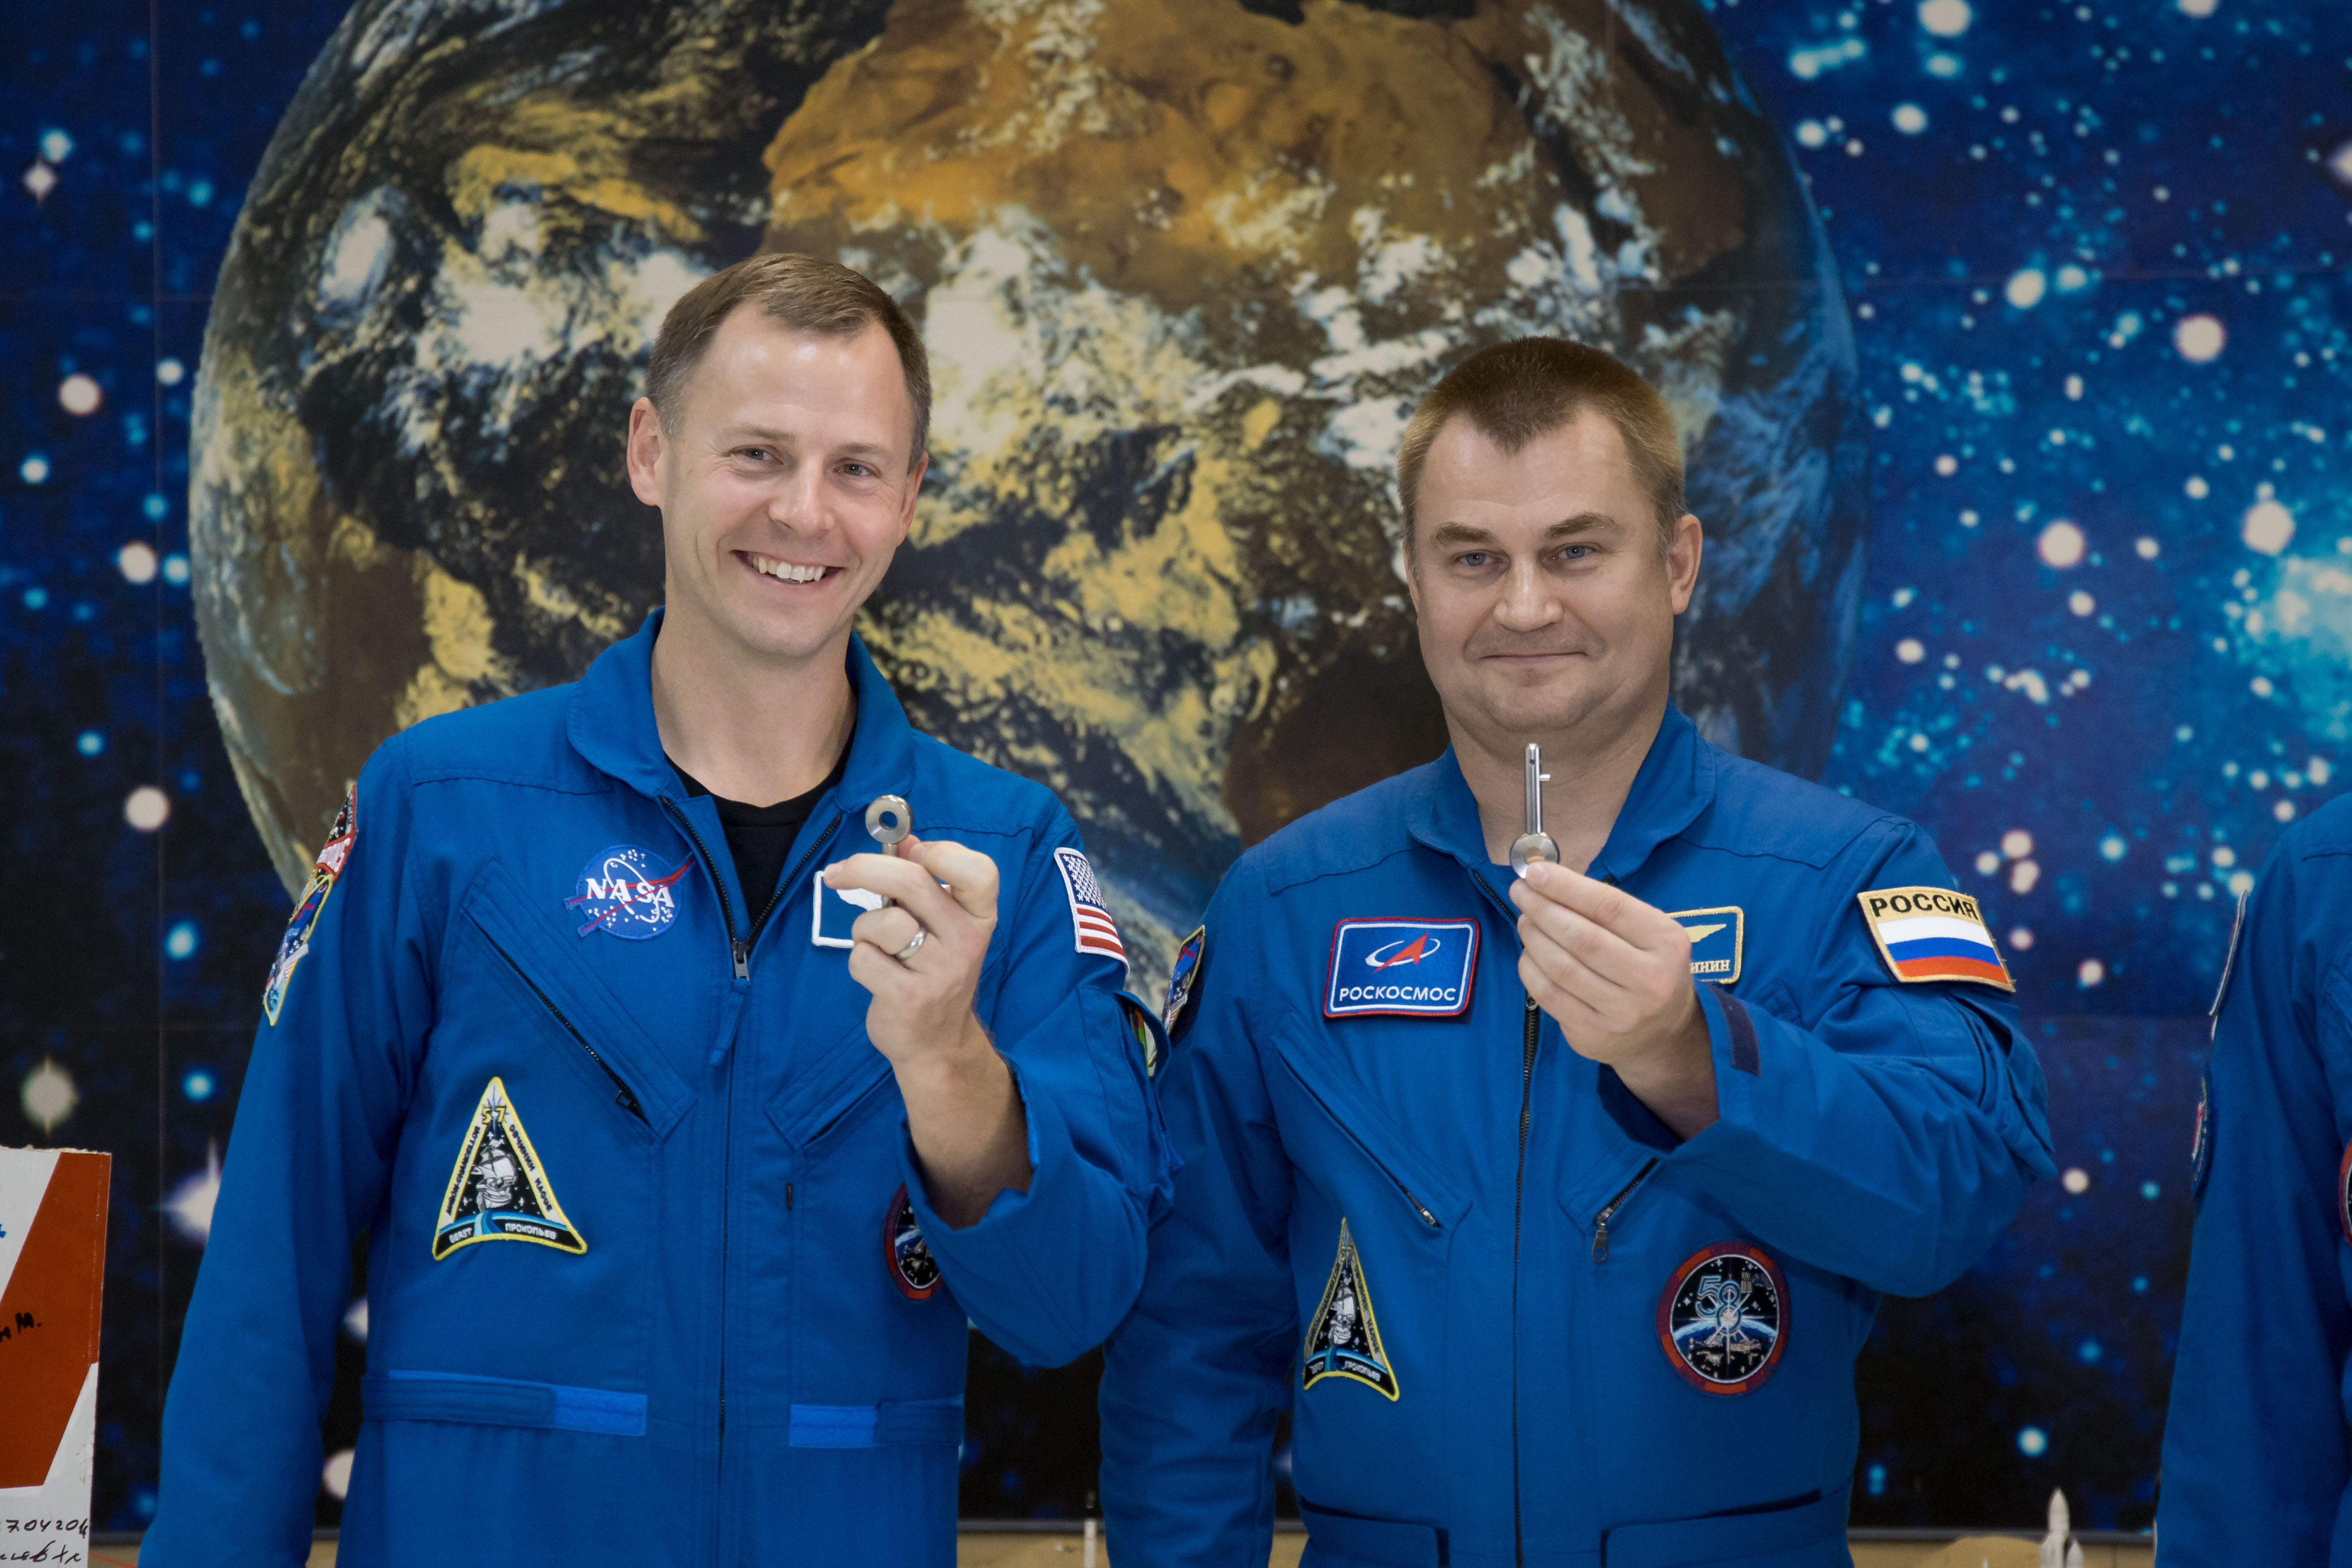 """At the Baikonur Cosmodrome Museum in Kazakhstan, Expedition 57 Nick Hague of NASA (left) and Alexey Ovchinin of Roscosmos (right) display """"launch keys"""" they were presented Oct. 6 during a traditional pre-launch tour of the facility. Hague and Ovchinin wil"""